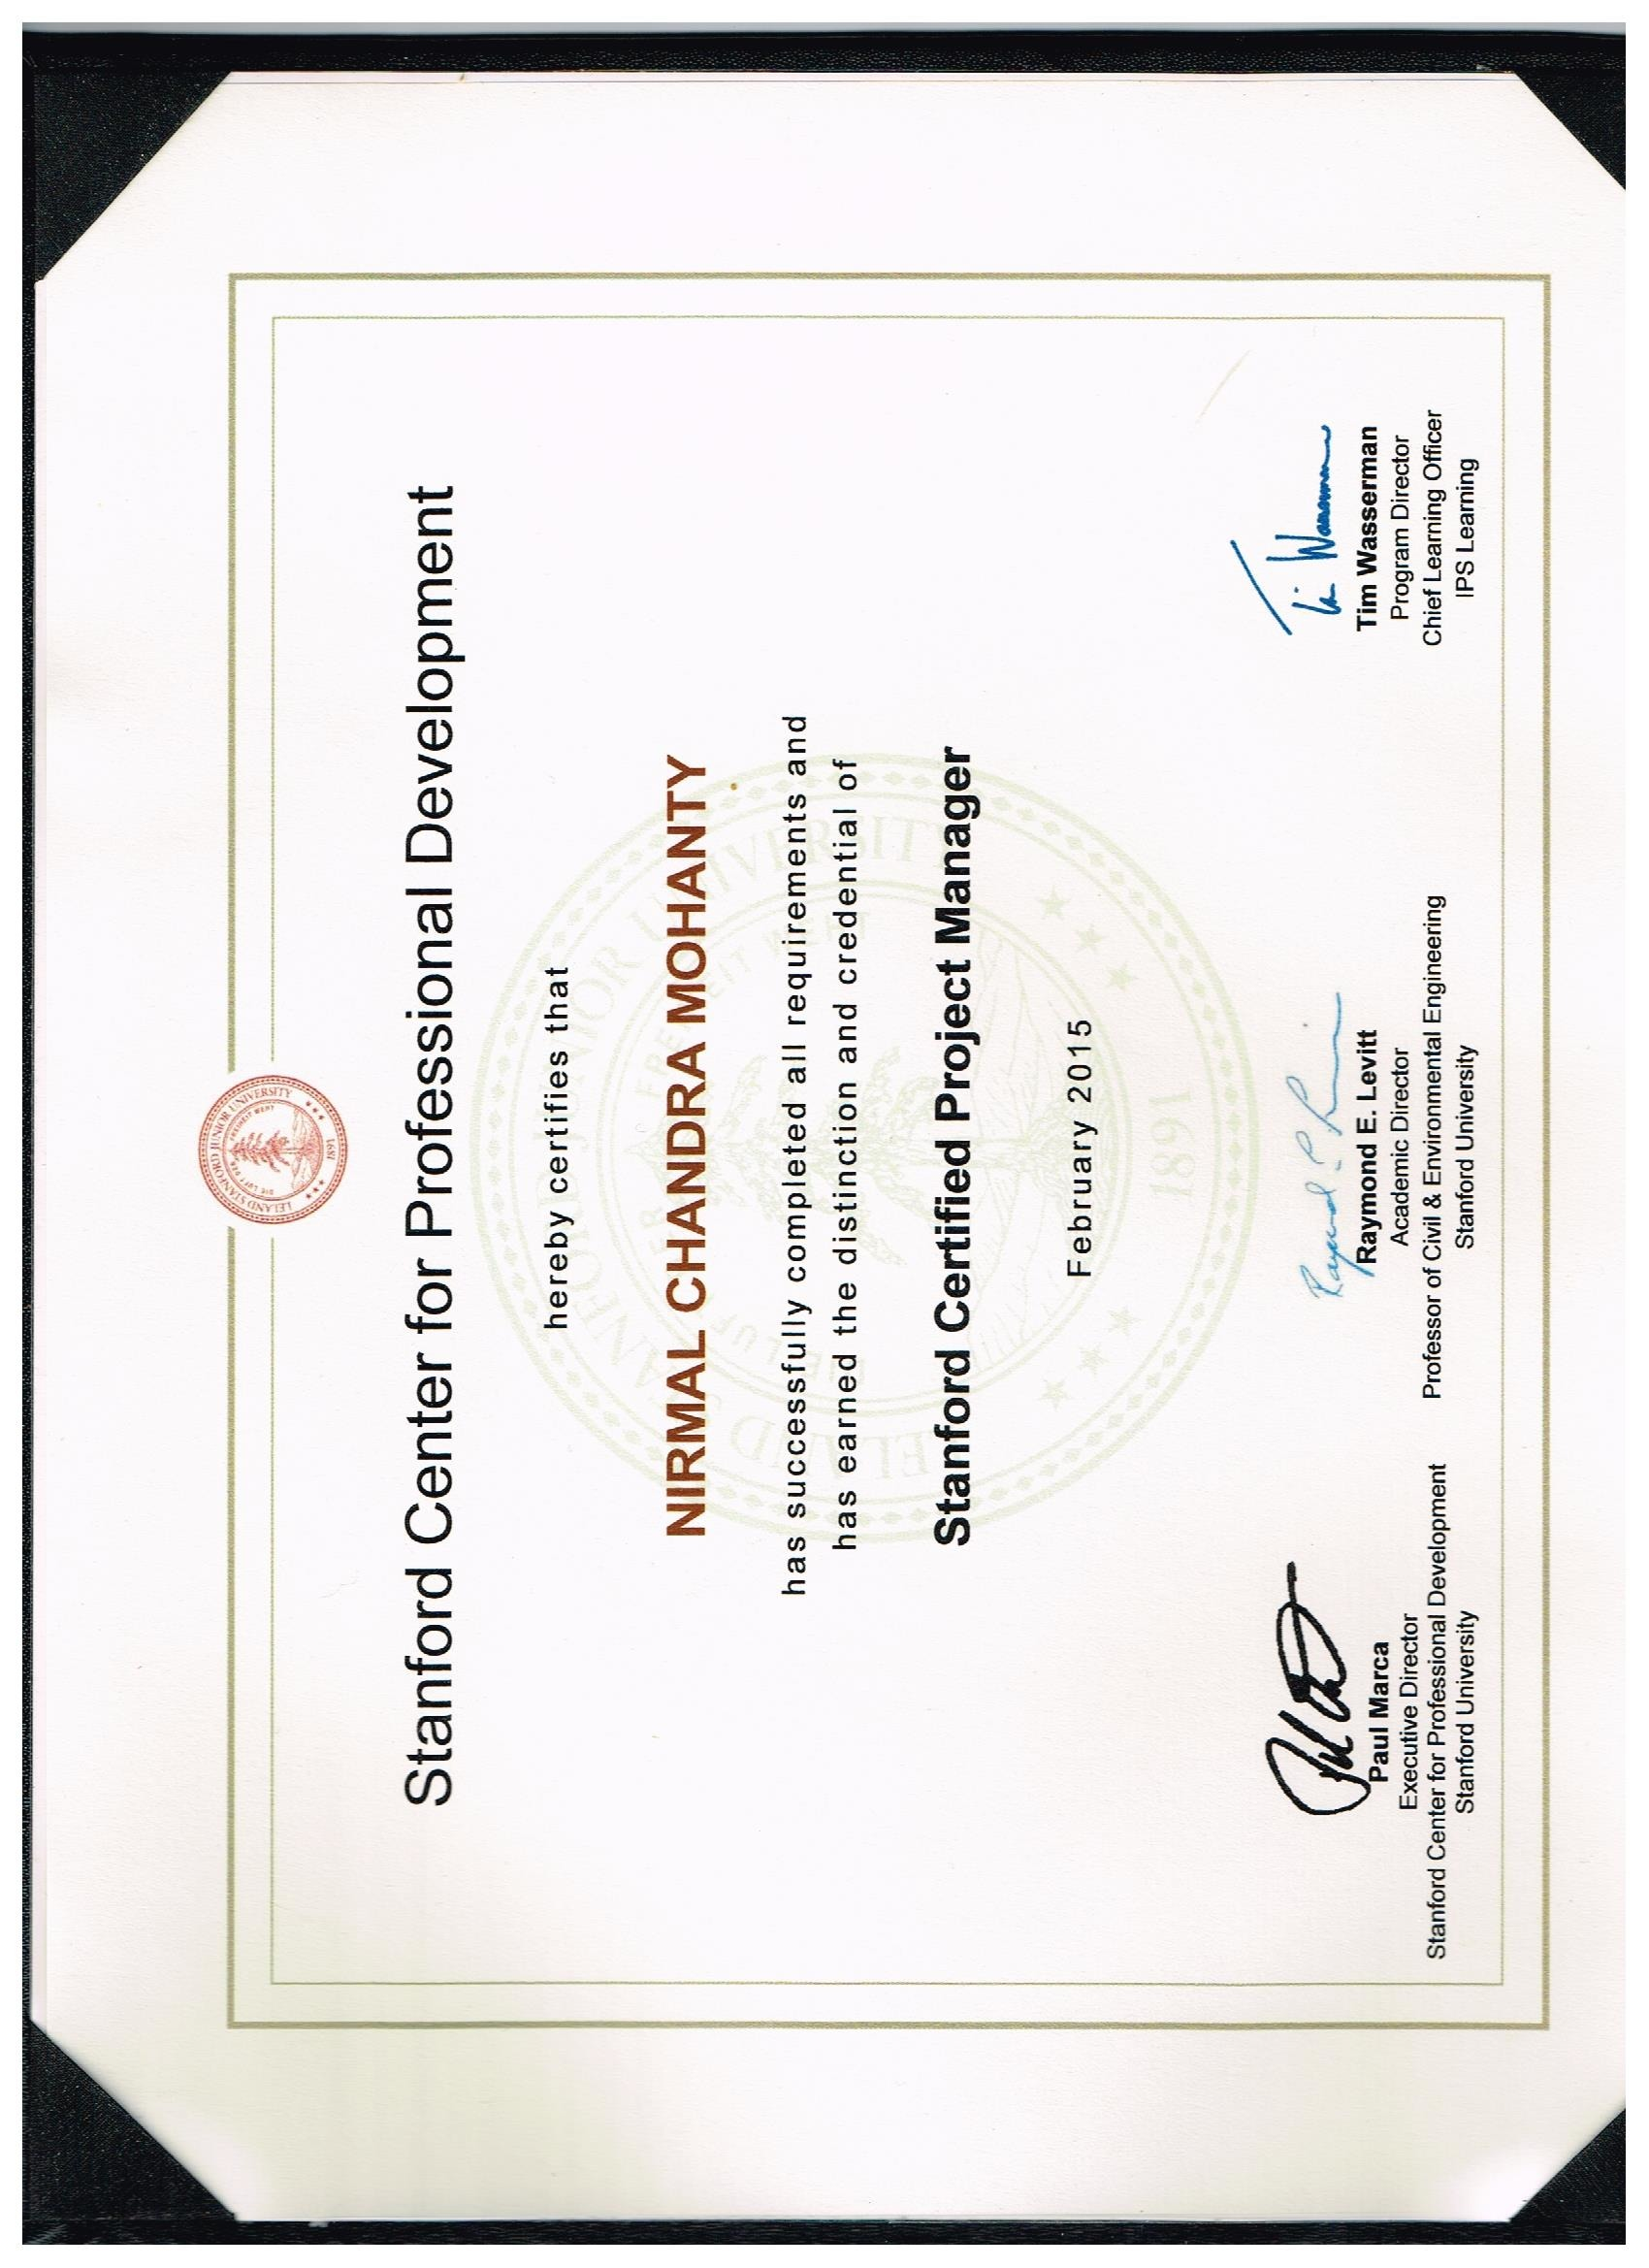 Nirmal mohanty bayt stanford certified project manager certificate xflitez Images